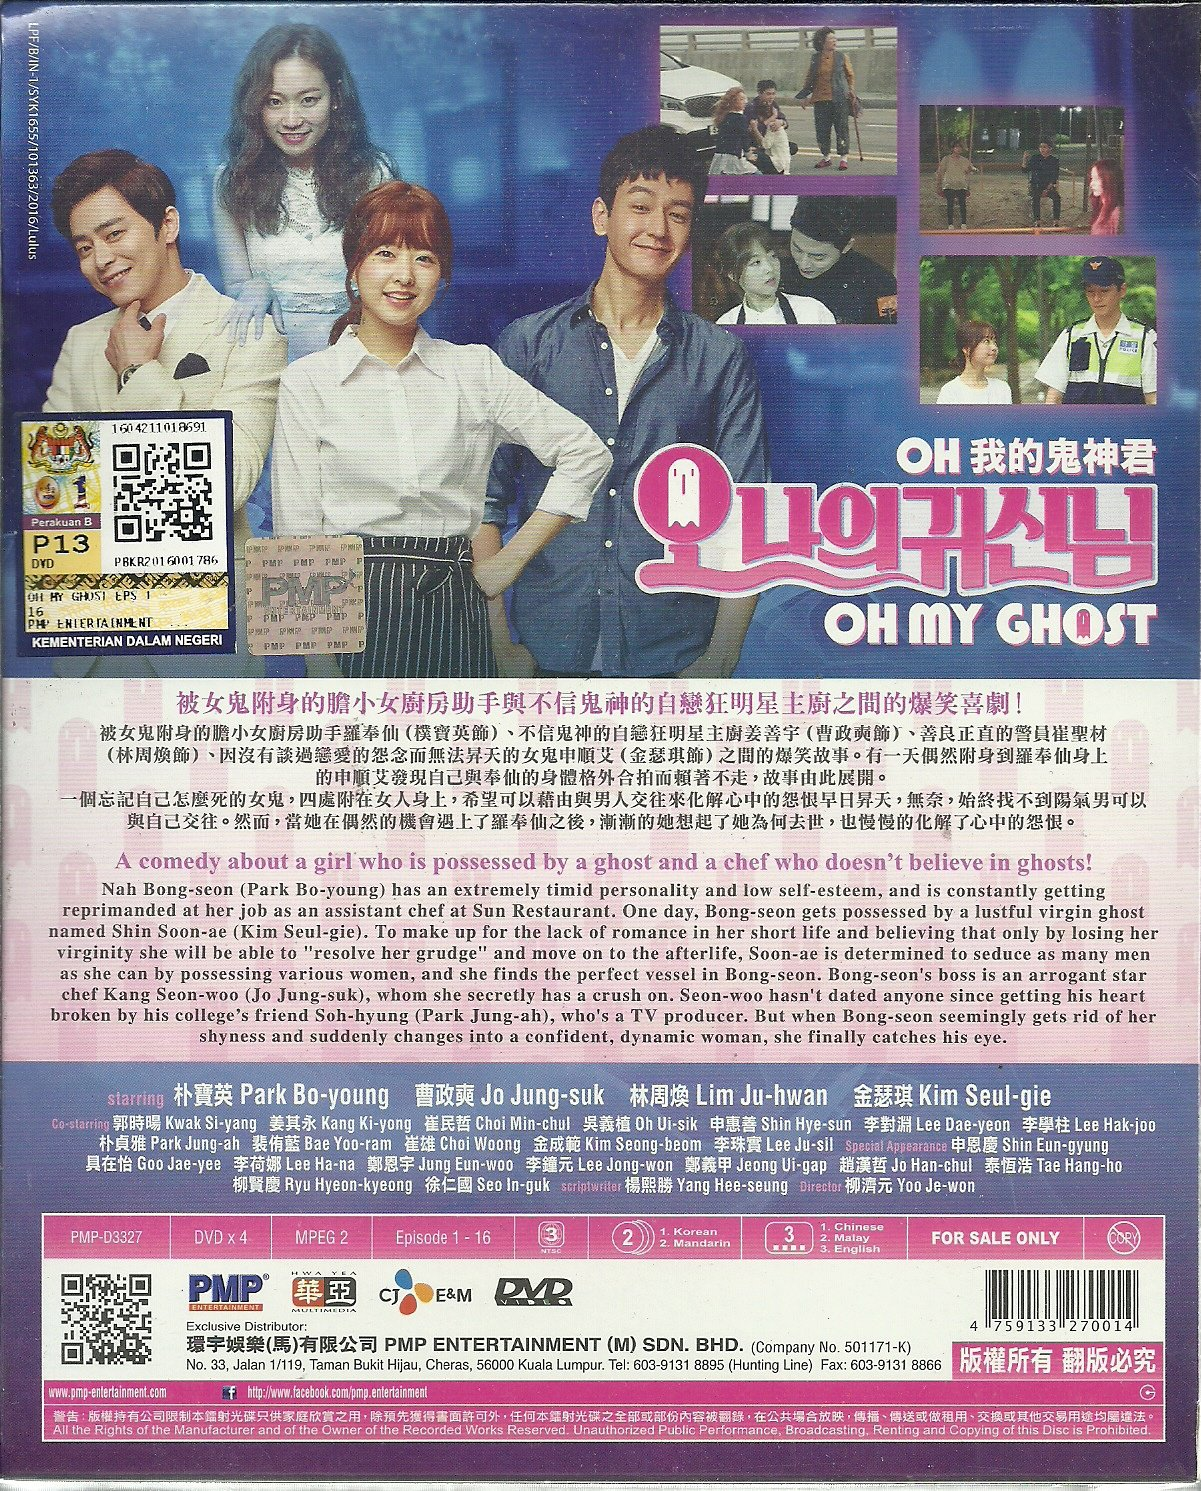 Amazon com: OH MY GHOST - COMPLETE KOREAN TV SERIES DVD BOX